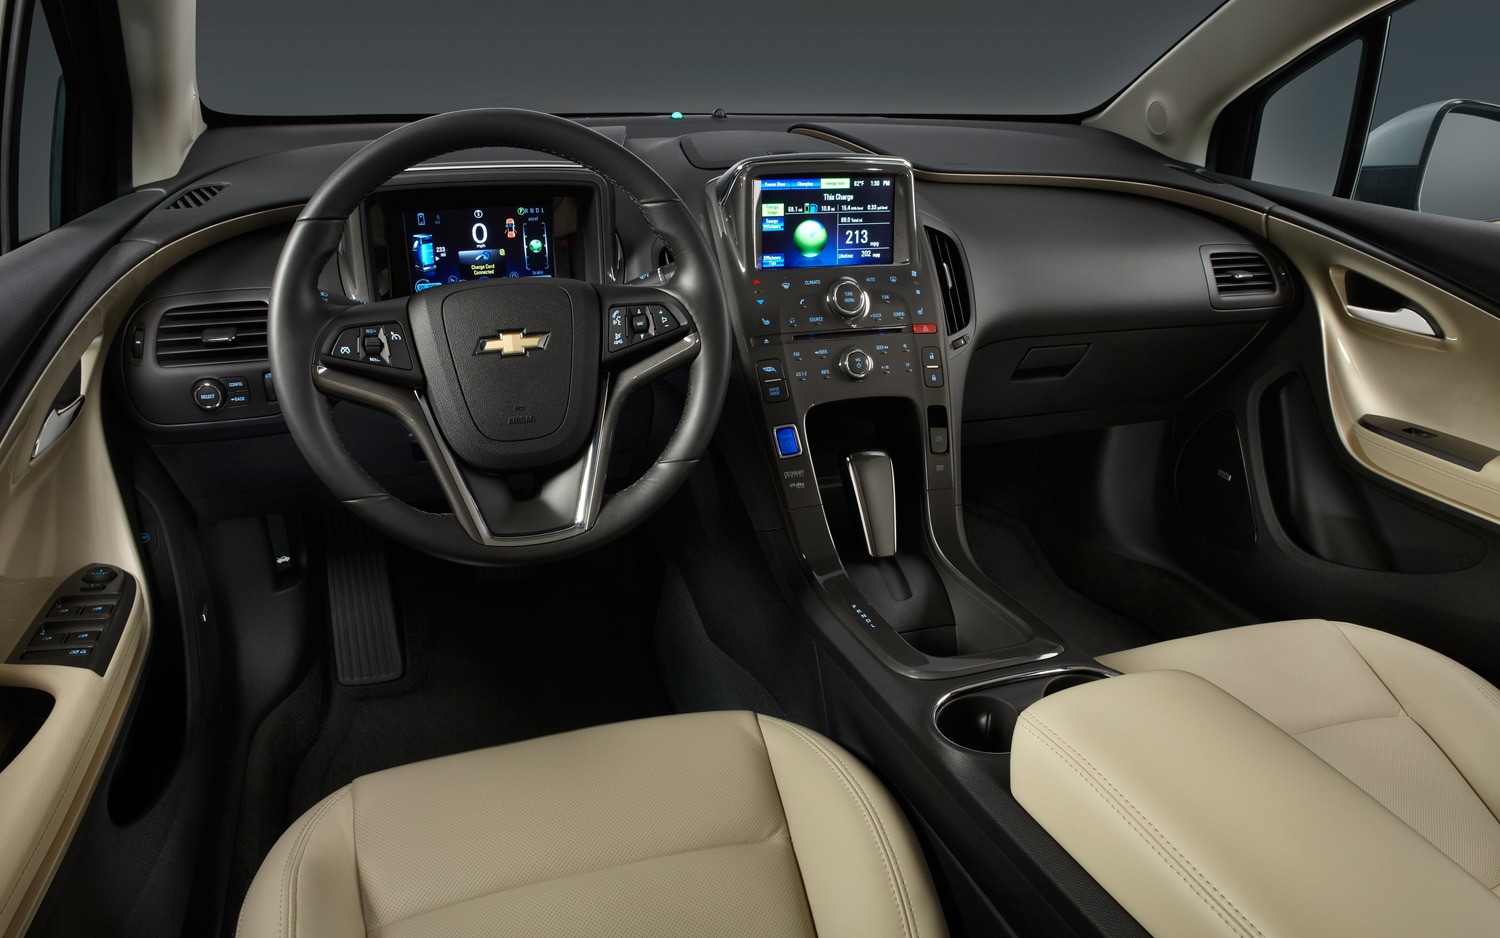 2012 Chevrolet Volt - Editors' Notebook - Automobile Magazine